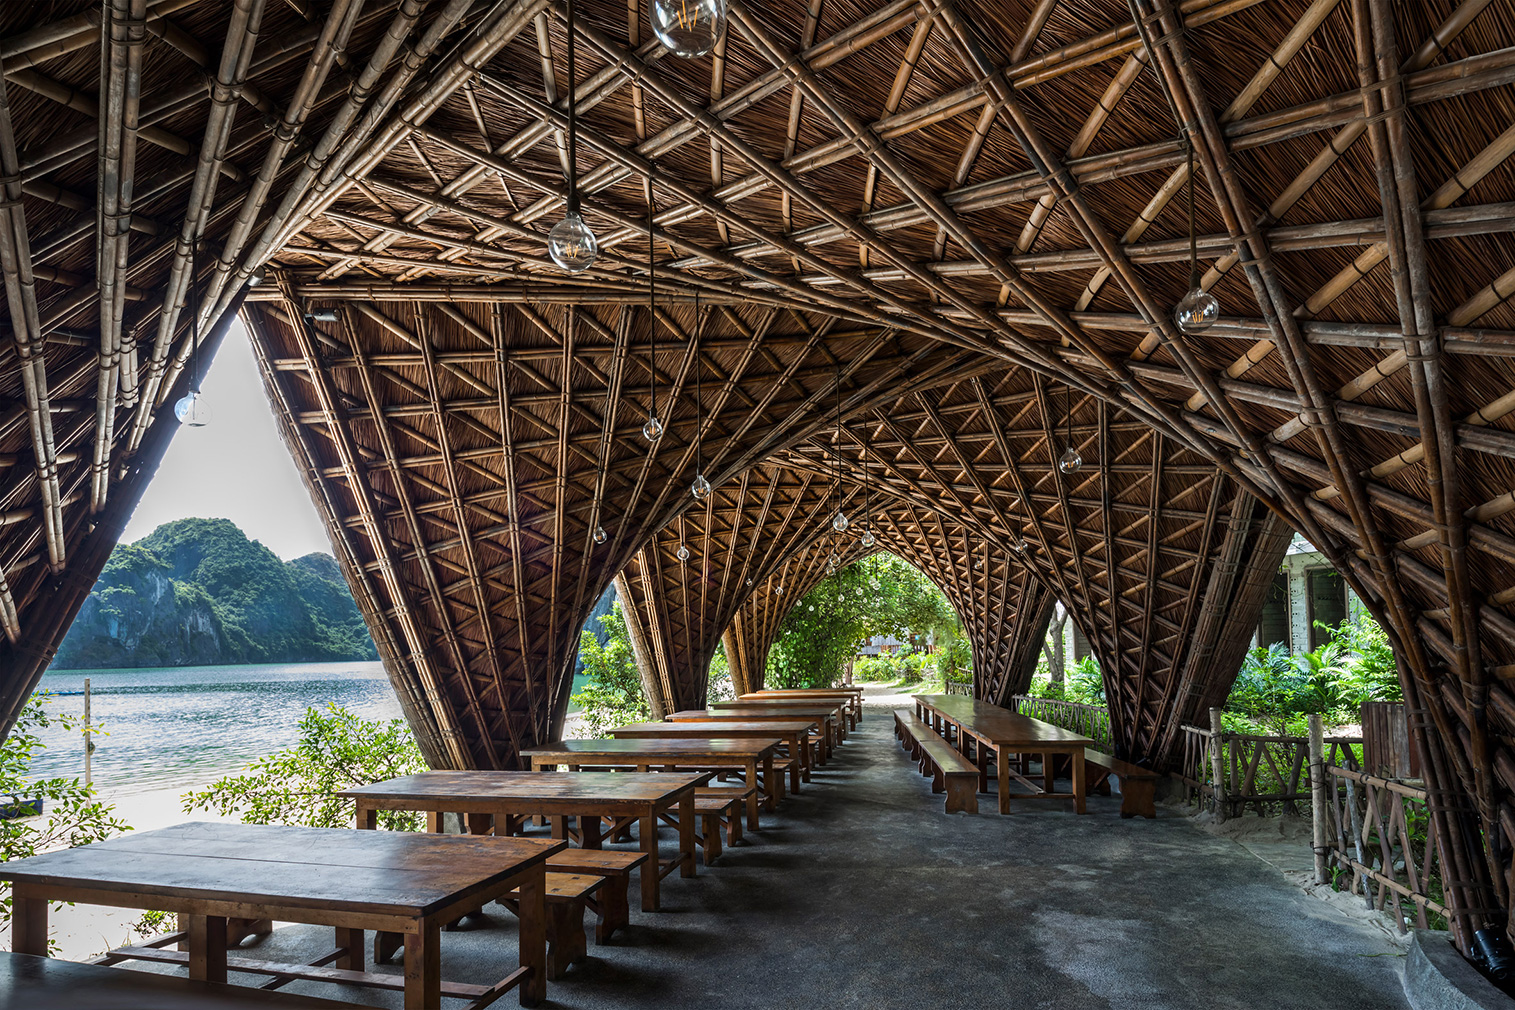 Vietnam's Castaway Island Resort is built from bamboo